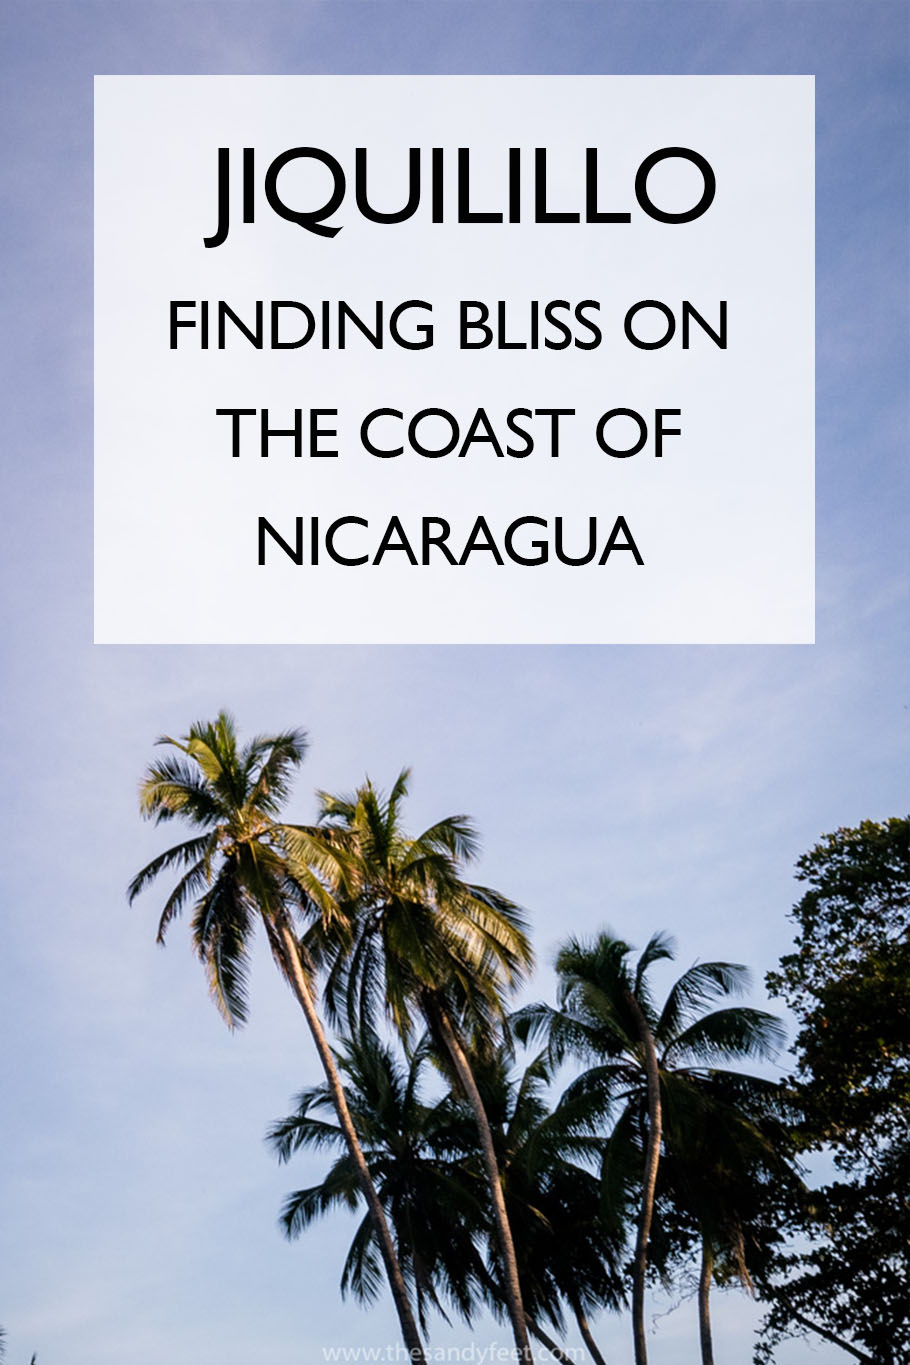 Jiquilillo: Finding Bliss on the Coast of Nicaragua